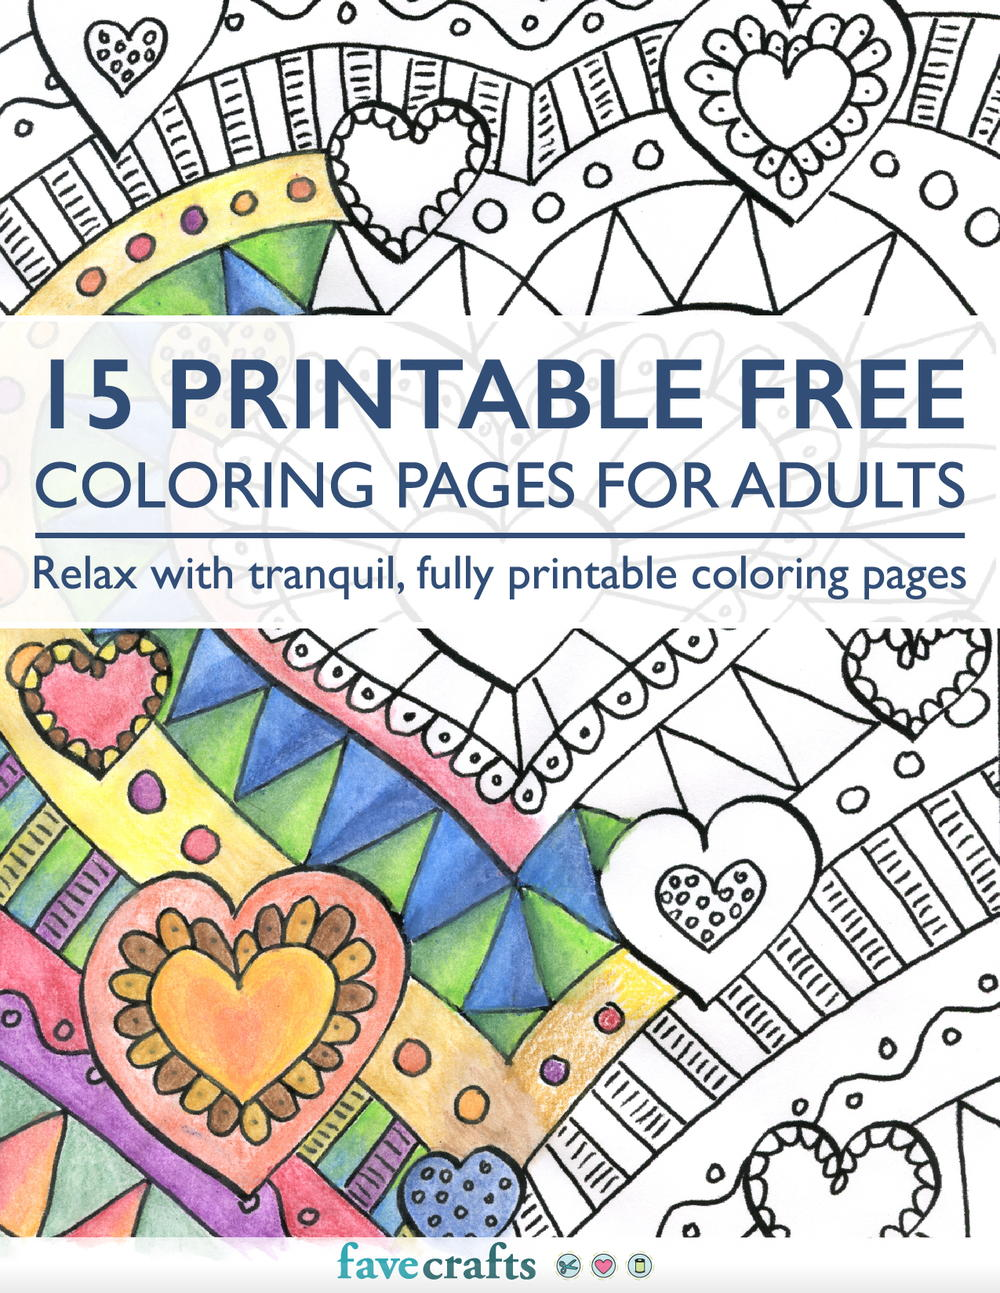 15 printable free coloring pages for adults [pdf] | favecrafts